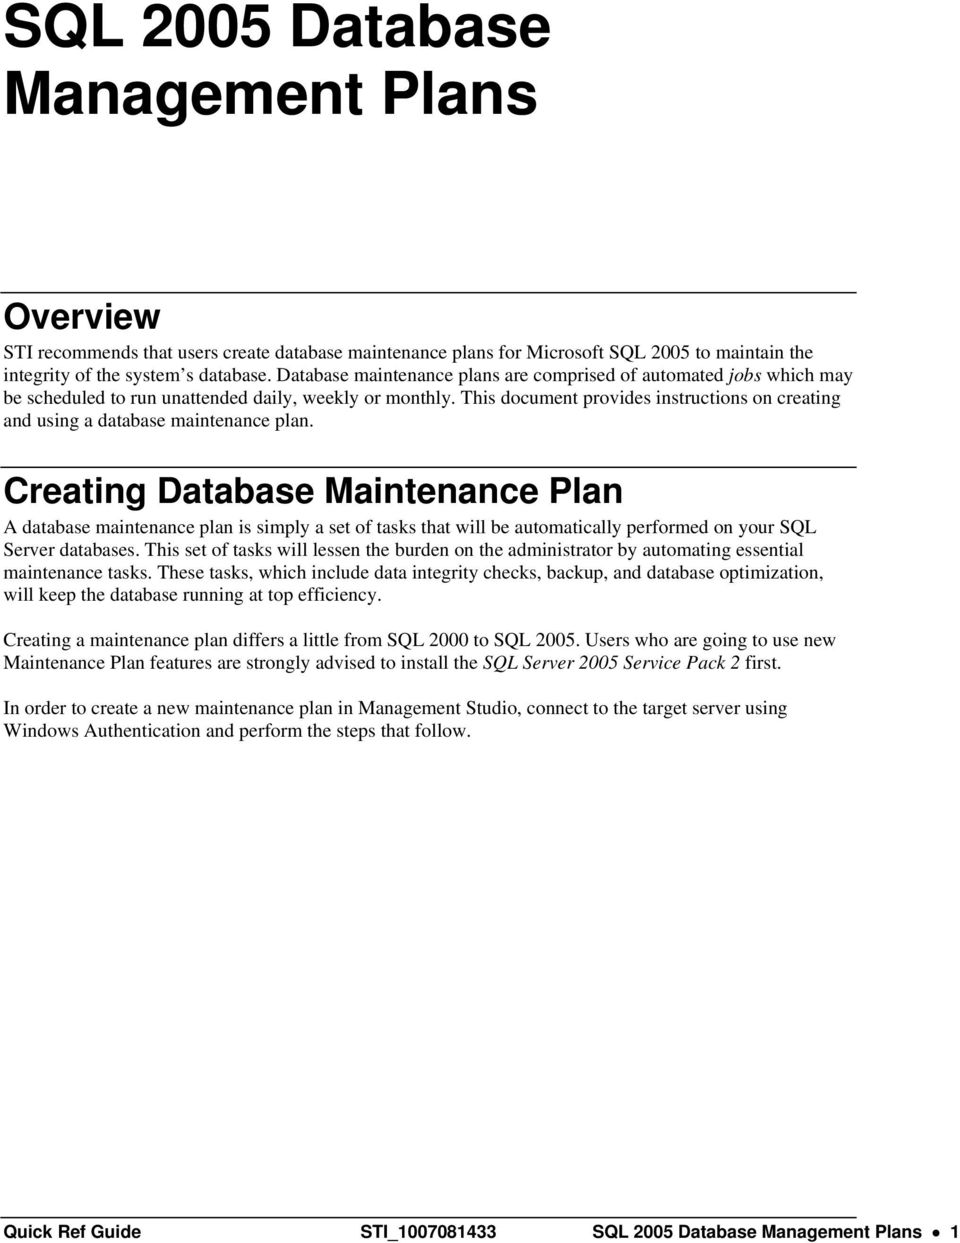 This dcument prvides instructins n creating and using a database maintenance plan.